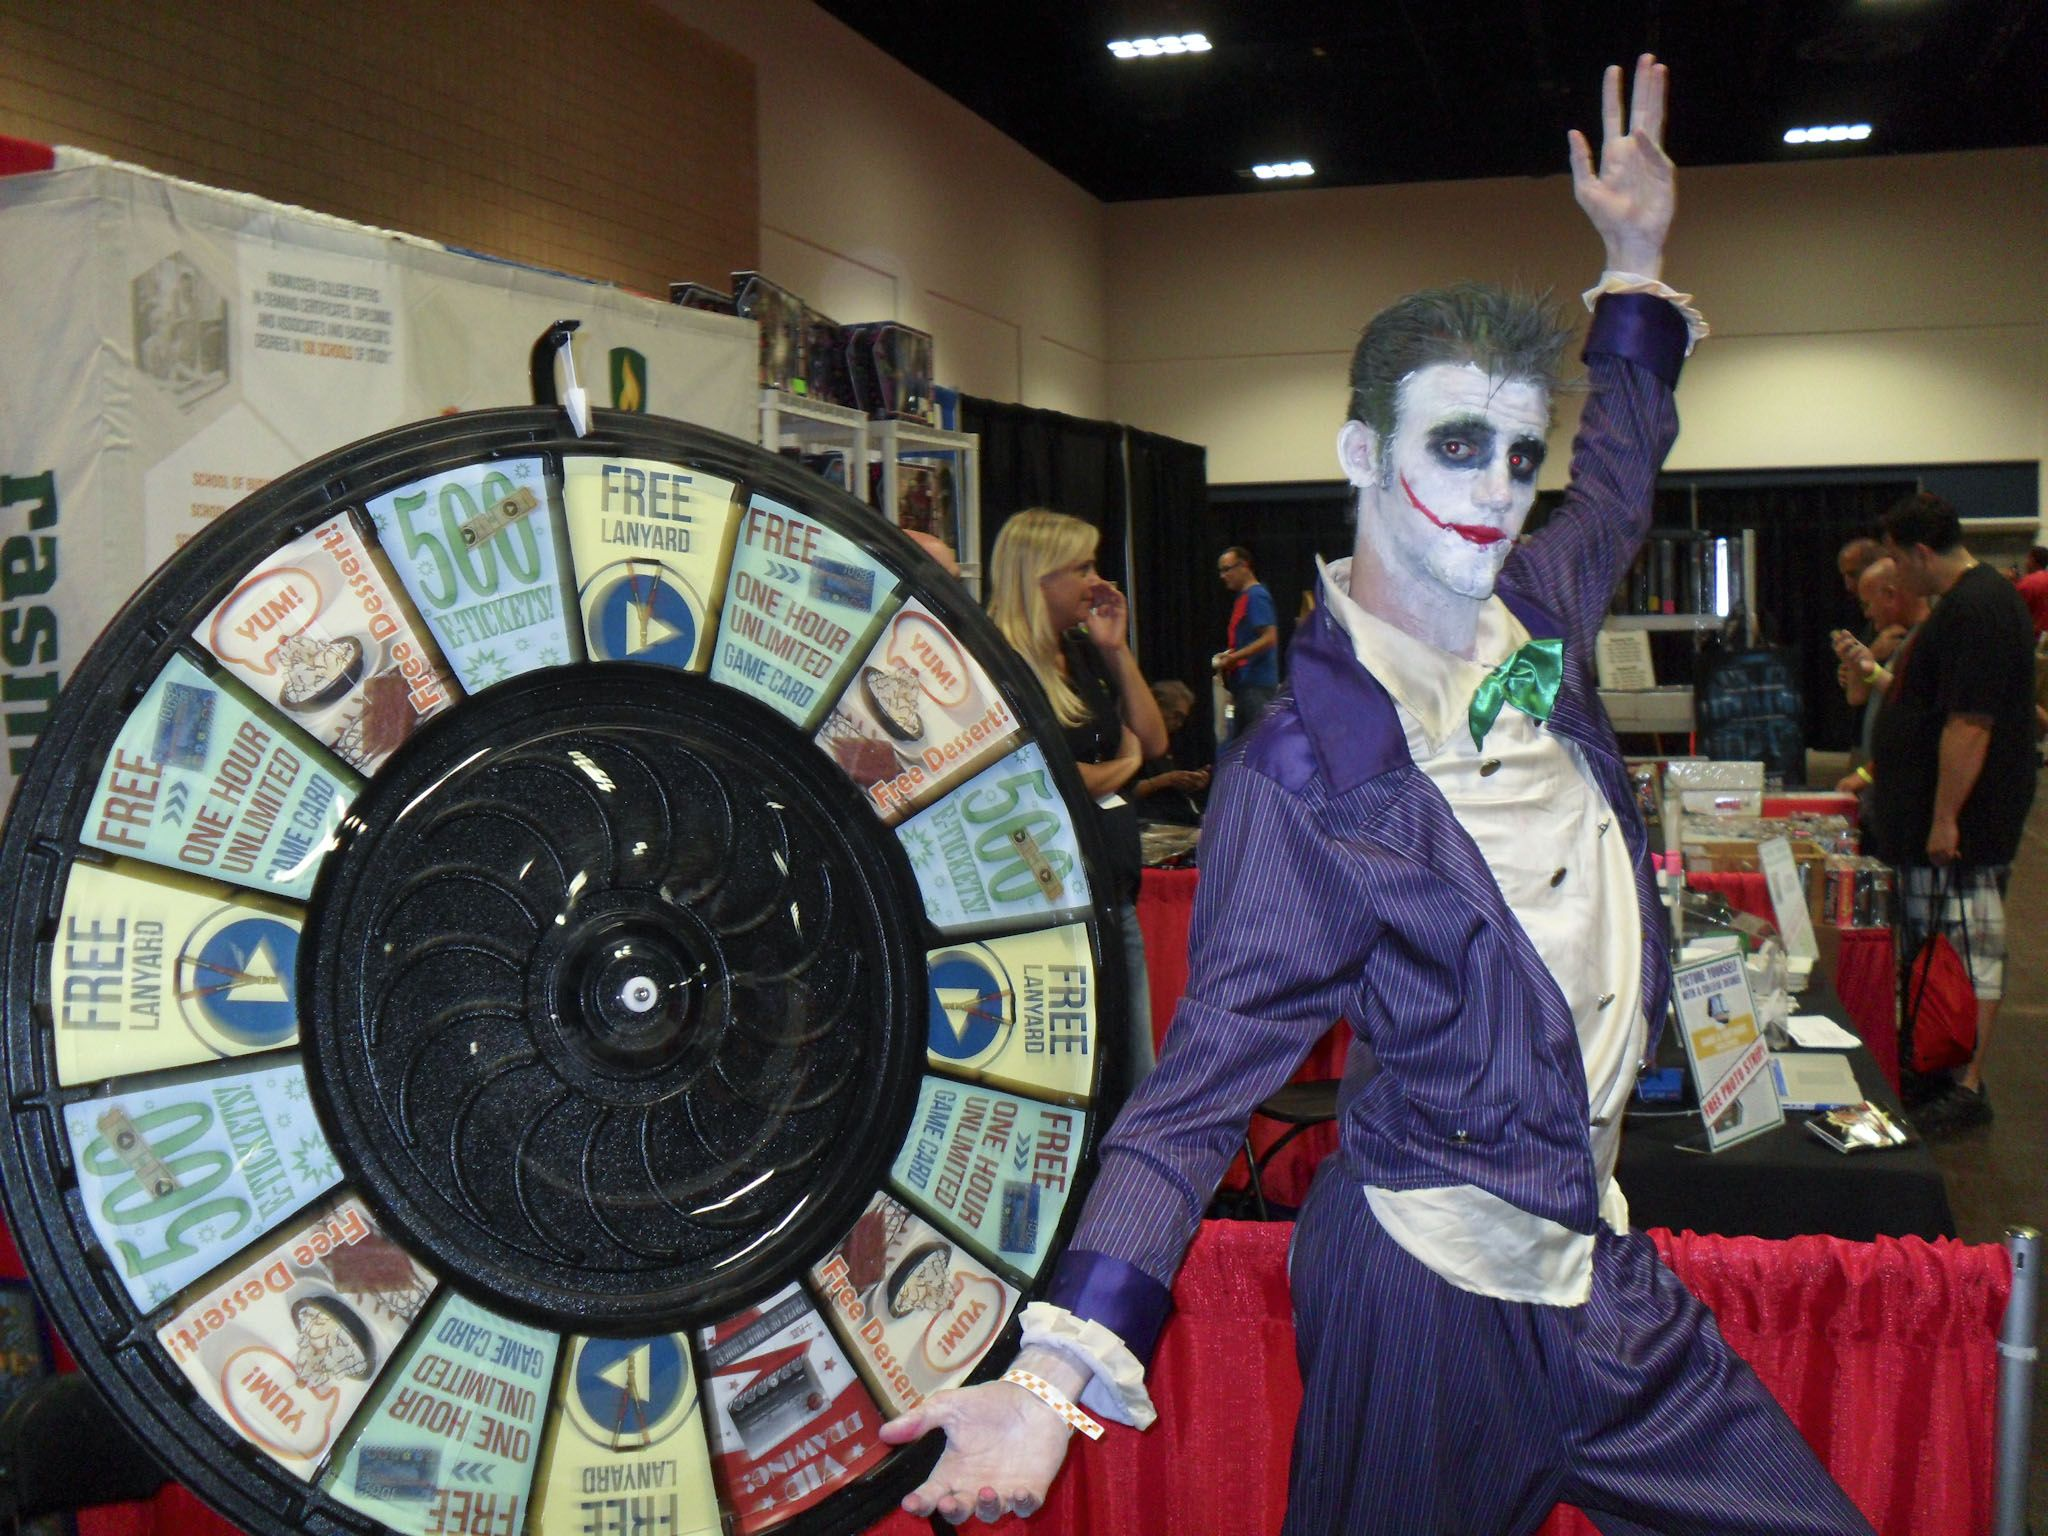 Check Out Some of the Great Pics We Took at Last Year's Tampa Comic Con. Buy this Prize Wheel at http://PrizeWheel.com/products/floor-prize-wheels/.